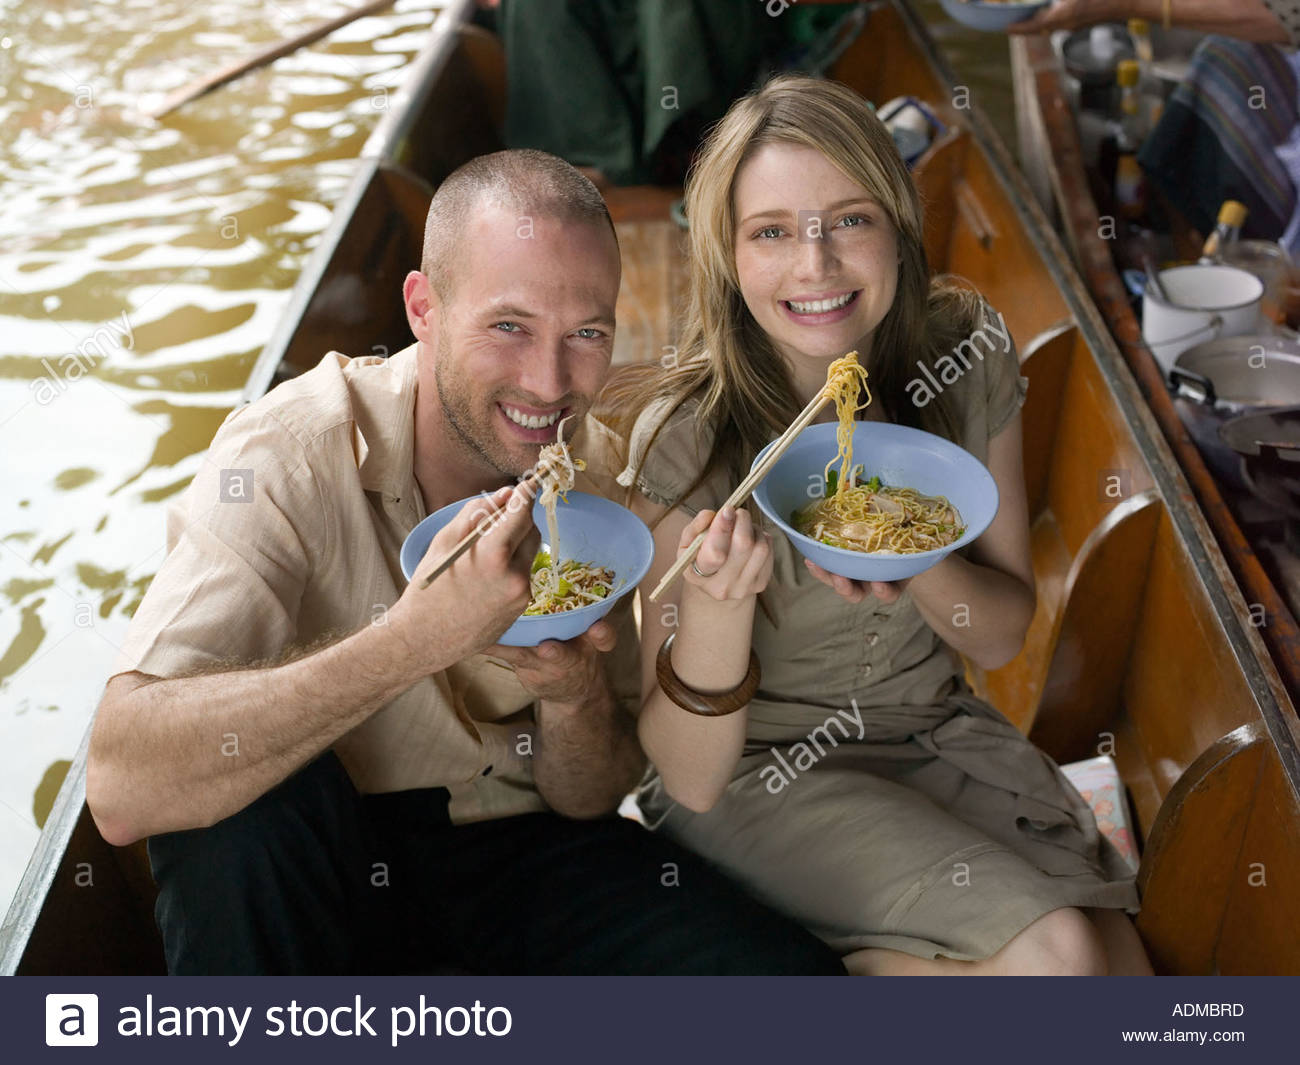 Couple eating meal on river boat - Stock Image